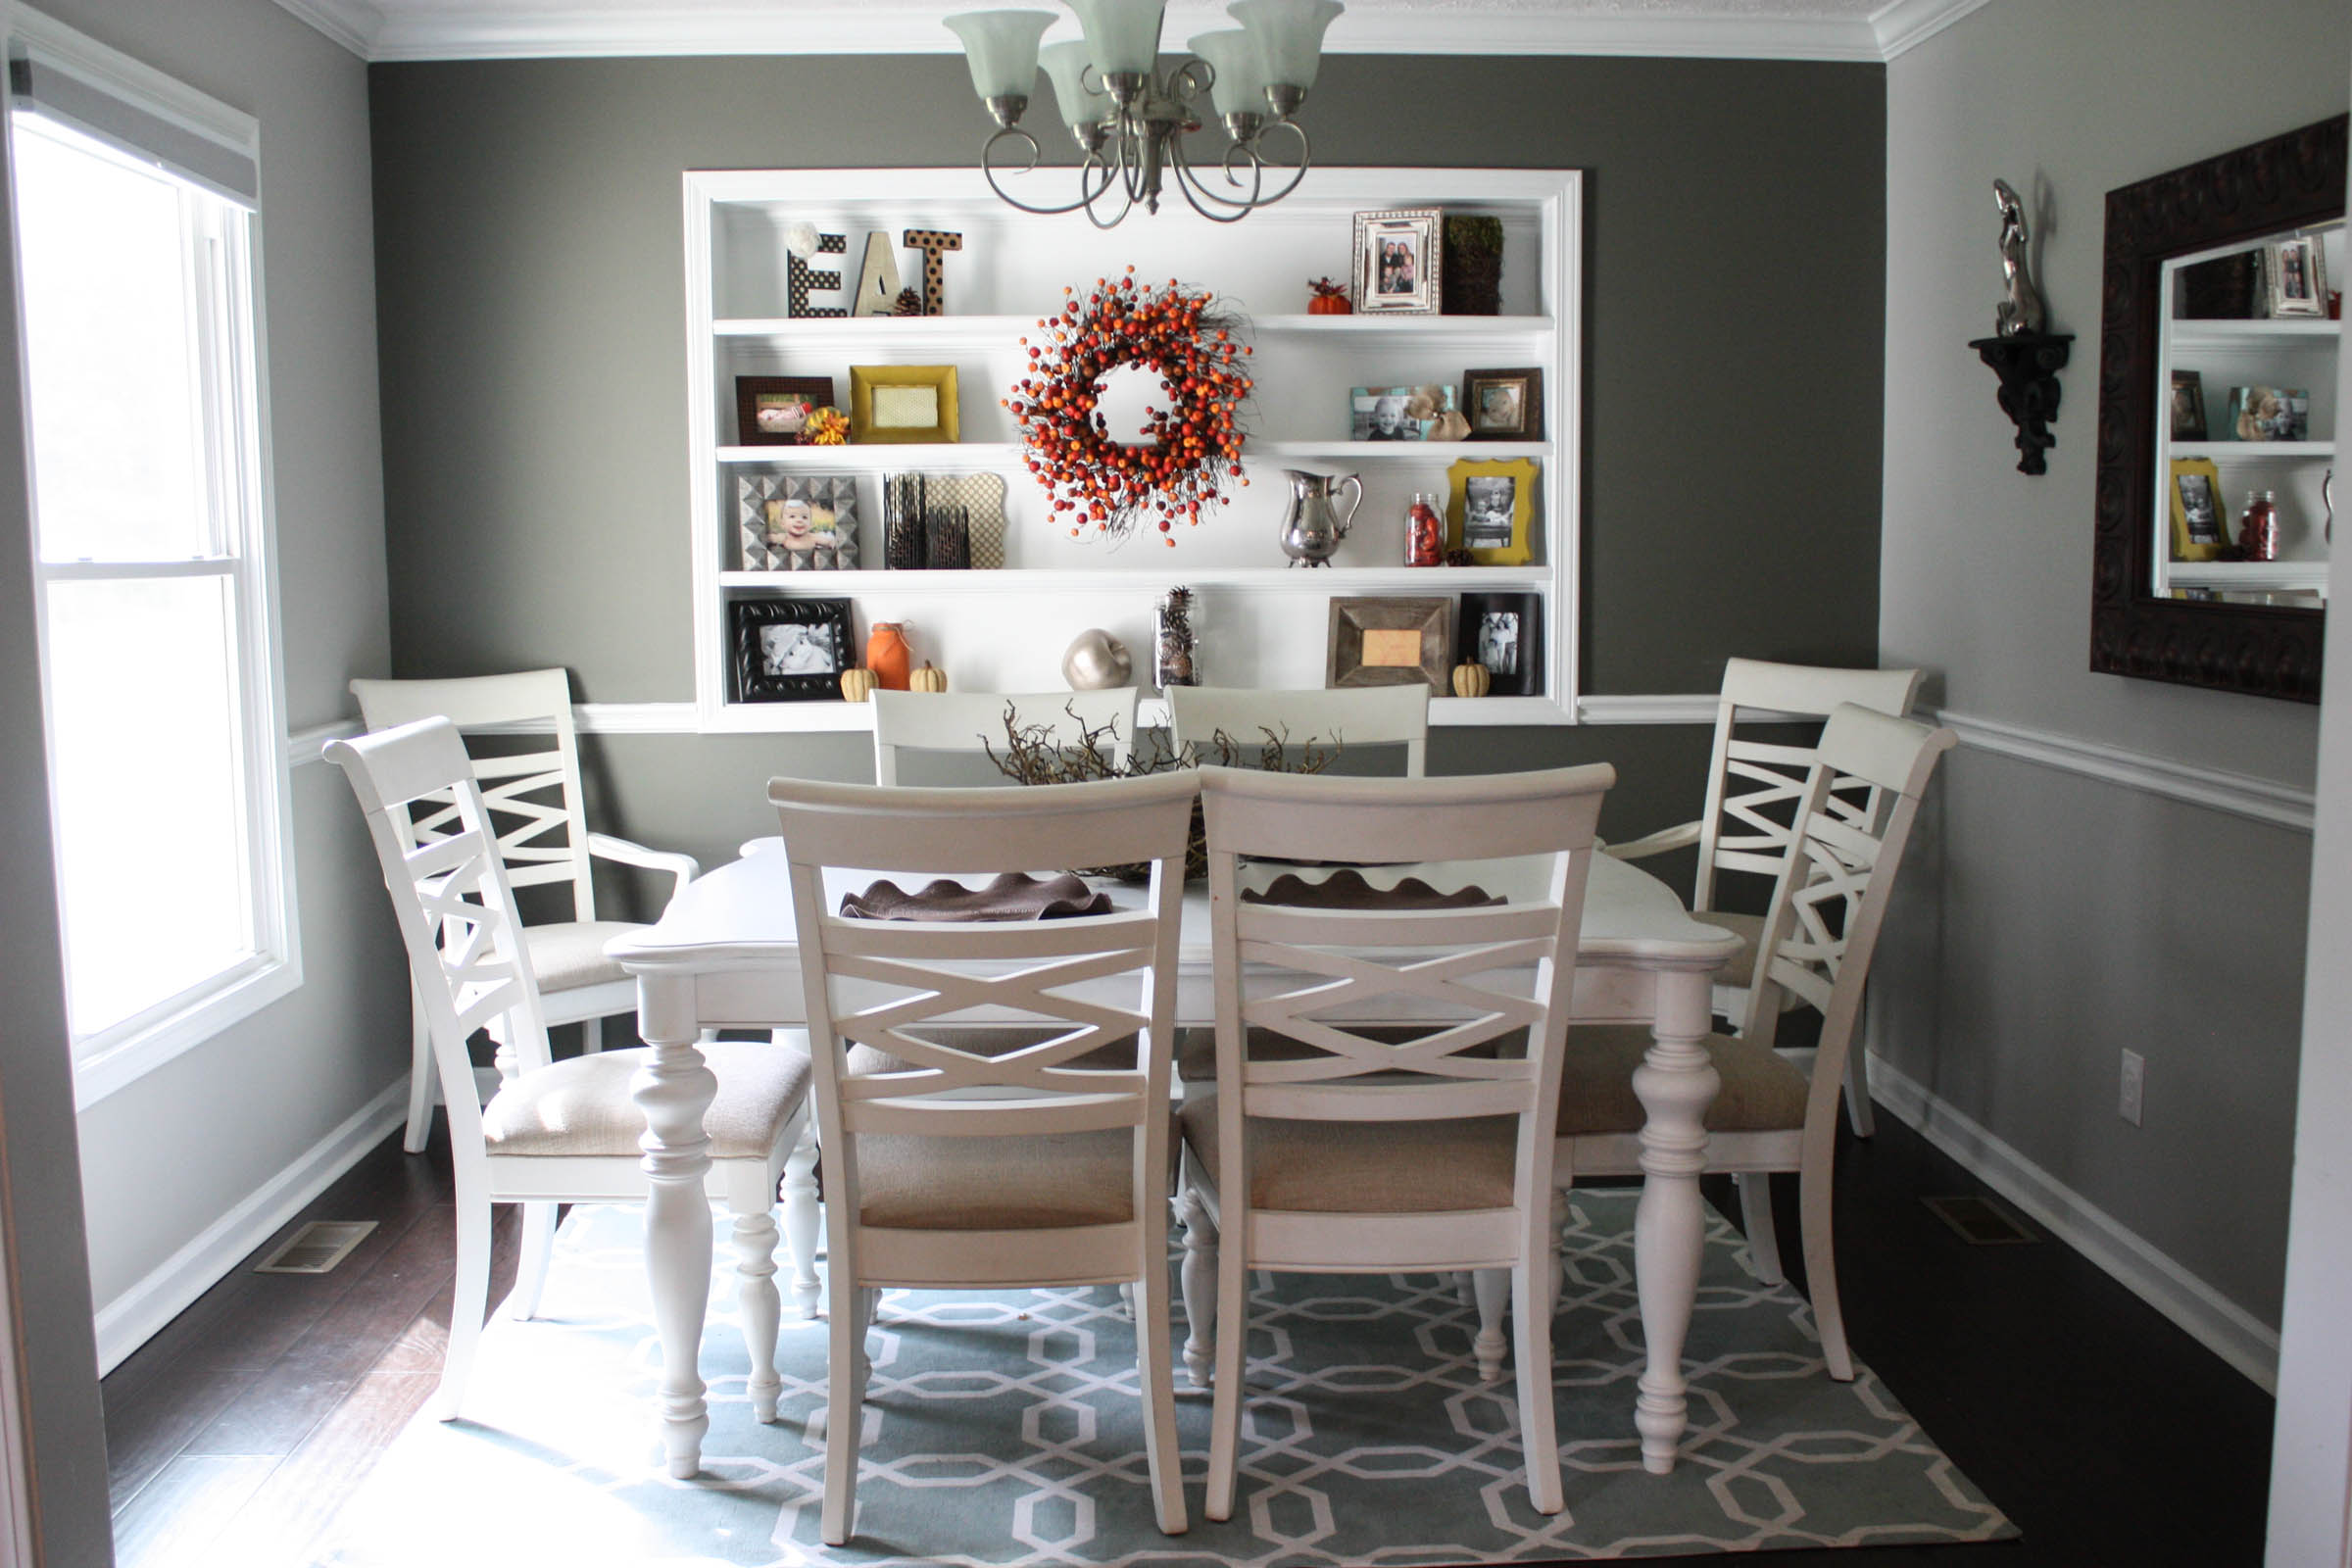 Perfect Budget Fall Dining Room Makeover for under $20 VE45